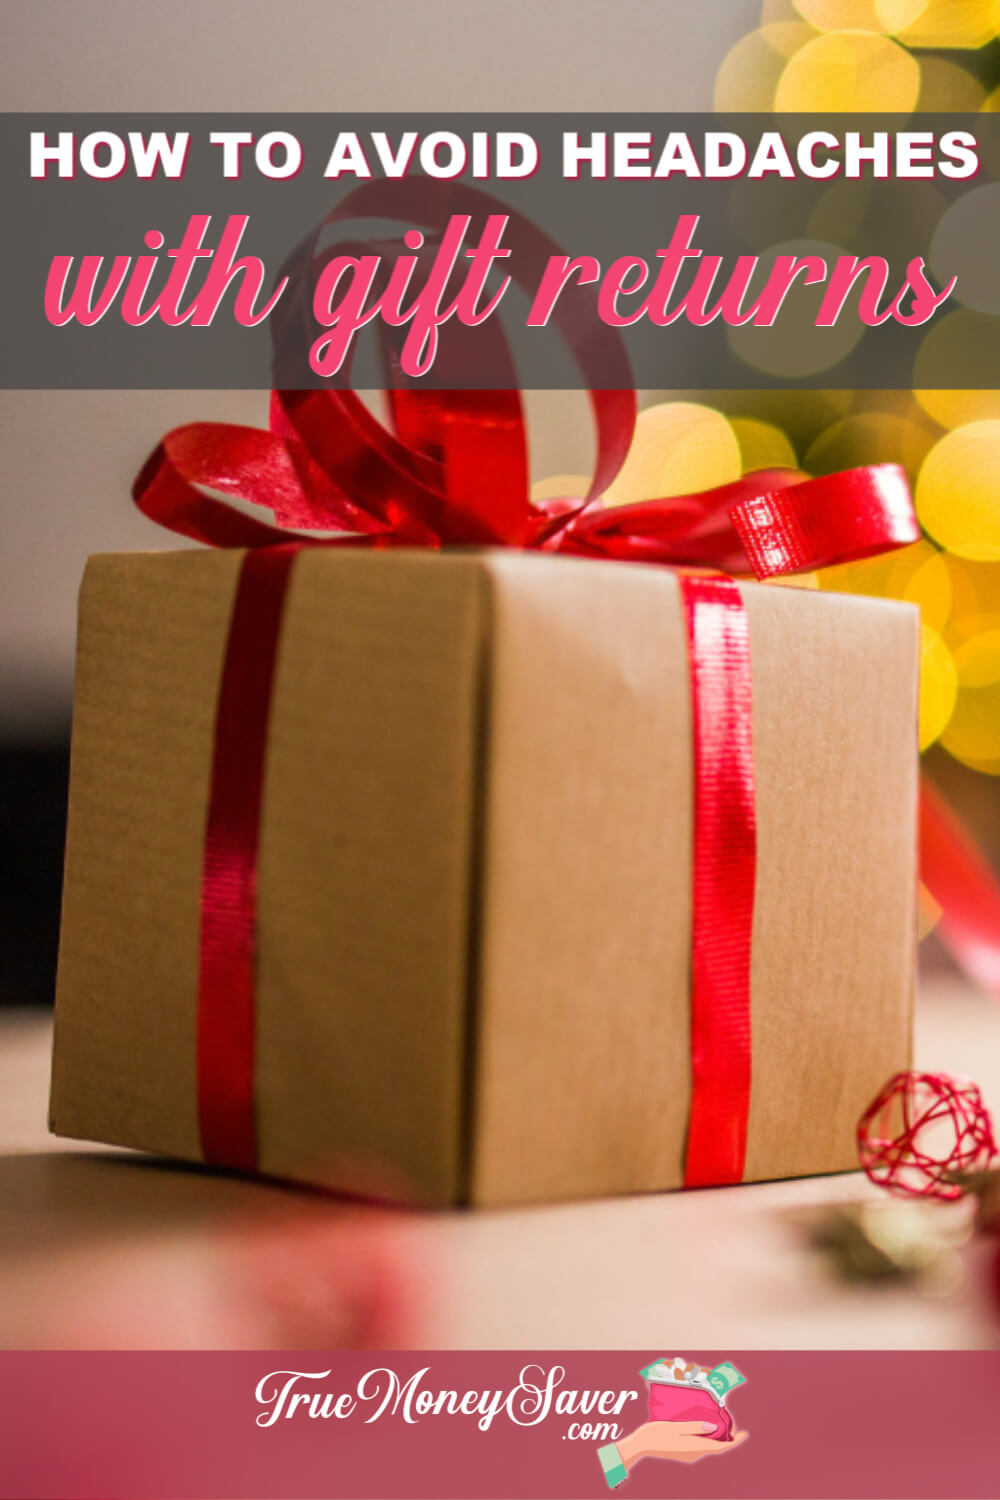 Don\'t make a purchase this year without knowing how to return holiday gifts! The gift returns get harder each year. So make sure you know how to return gifts the right way! Make returning gifts easy this year! Let\'s get started! 